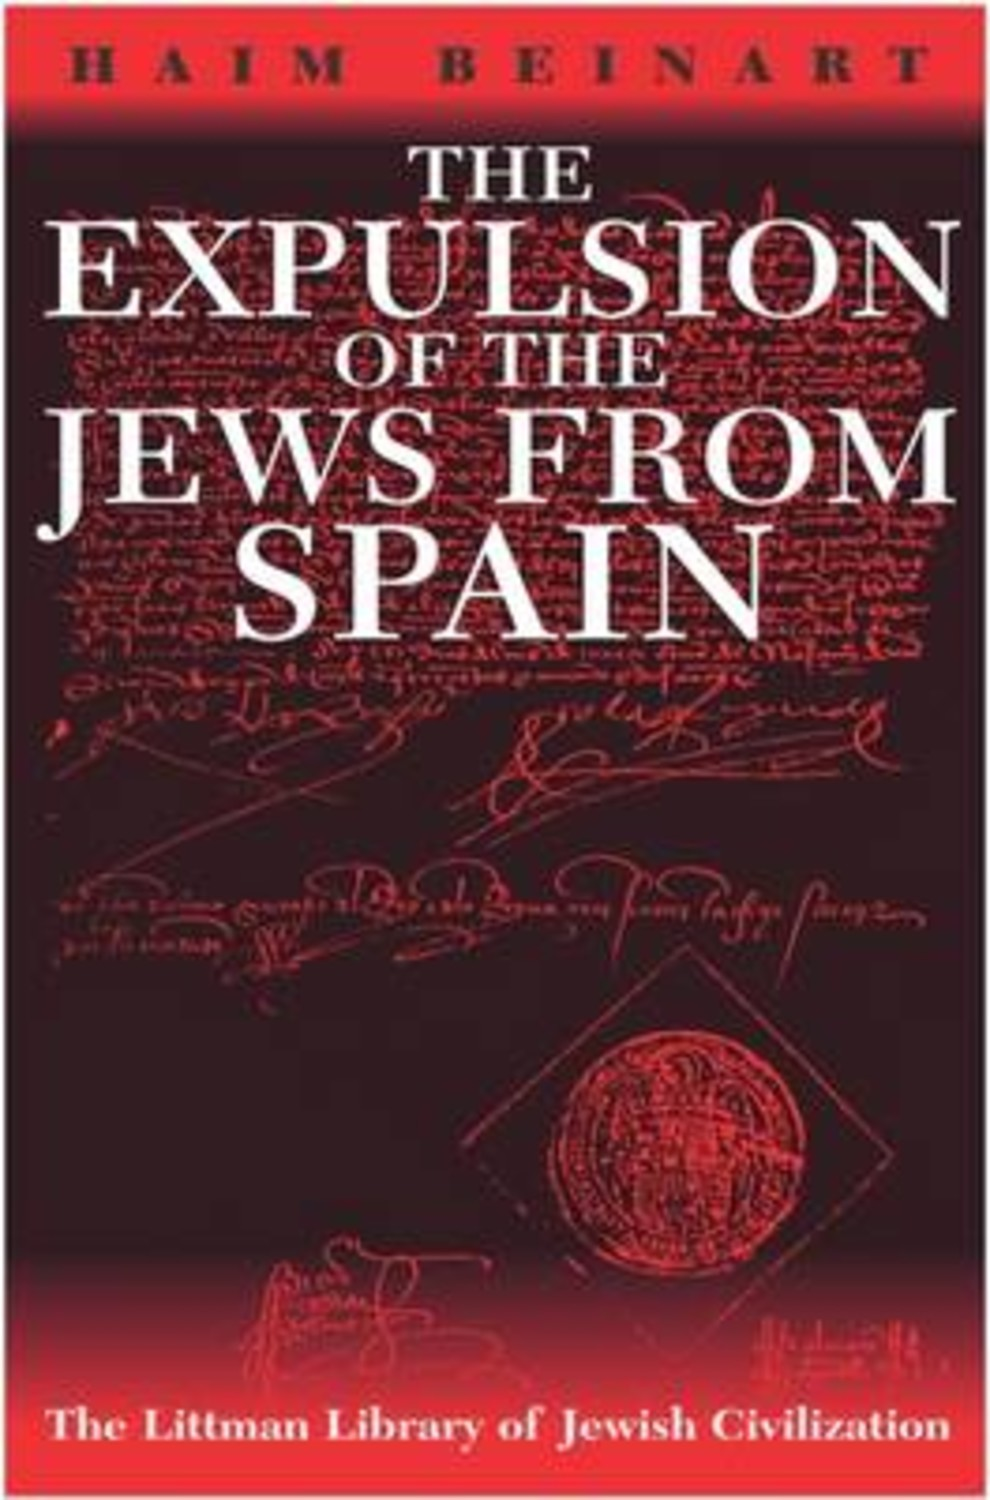 The Expulsion of the Jews from Spain